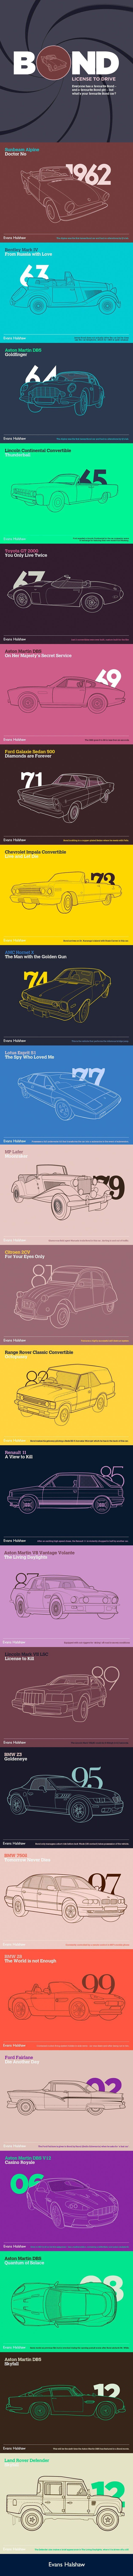 50 Years Of Iconic James Bond Cars [Infographic]